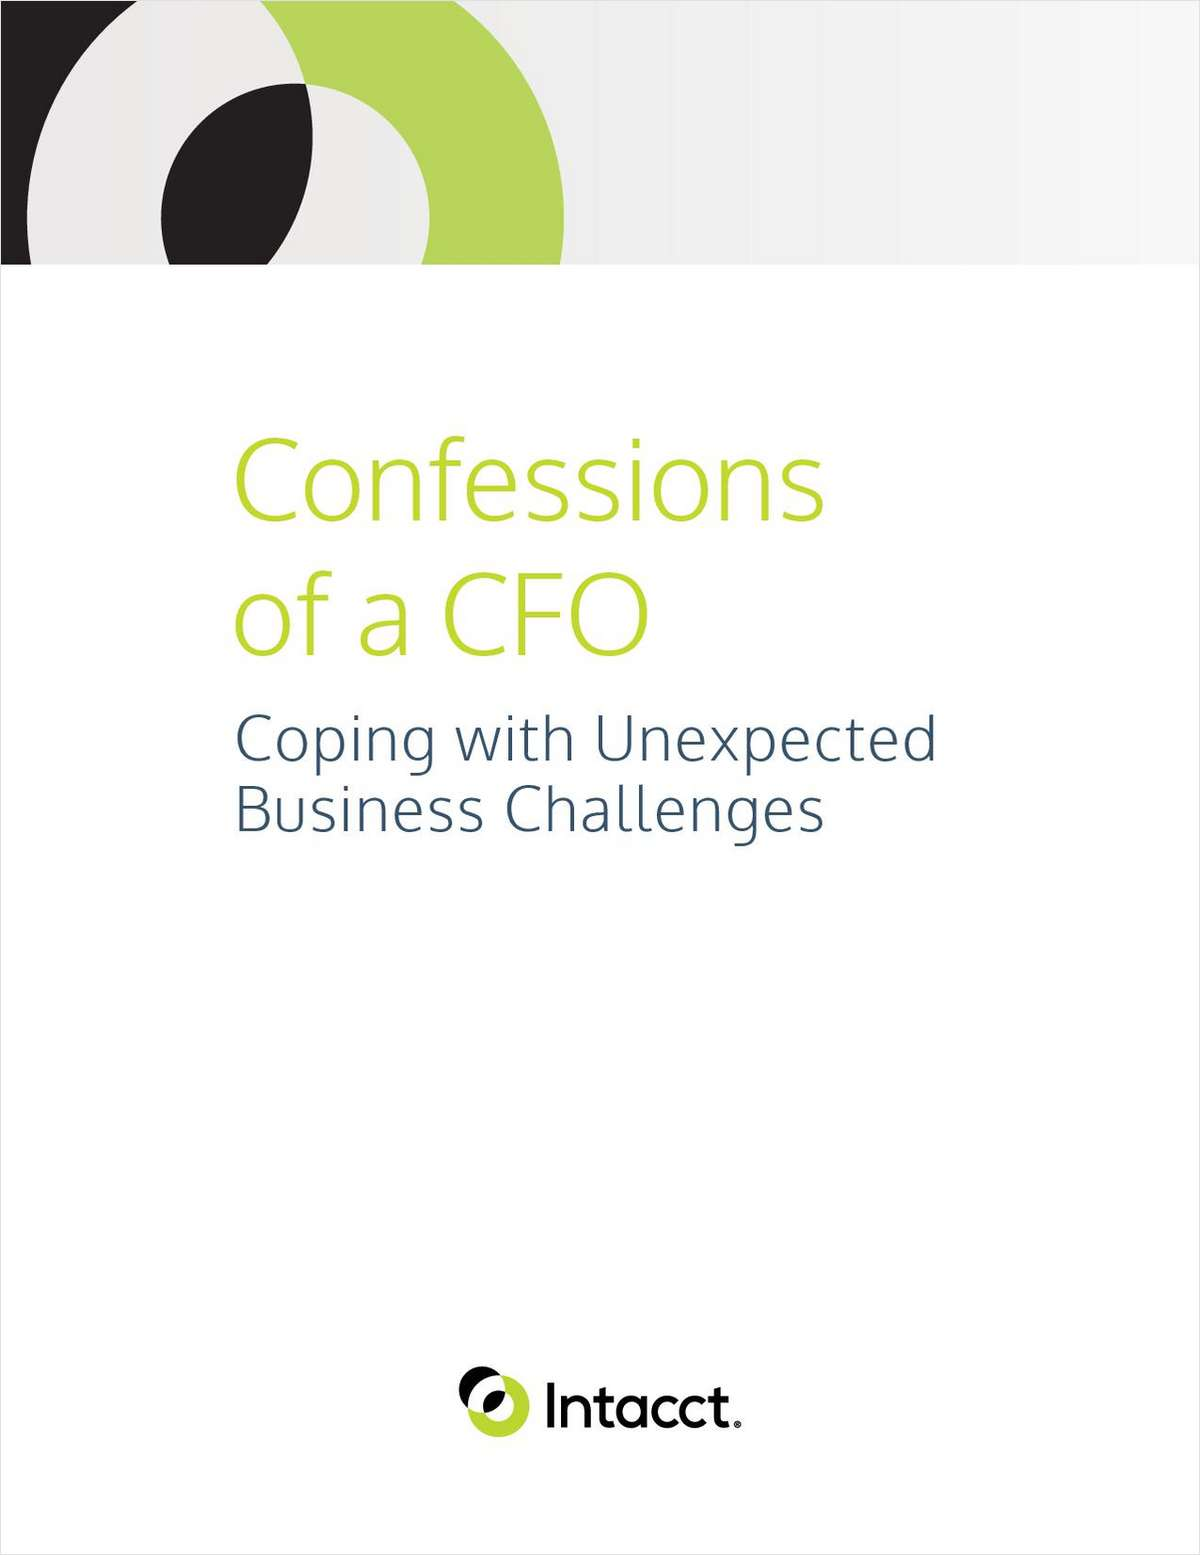 Confessions of a CFO: Coping with Unexpected Business